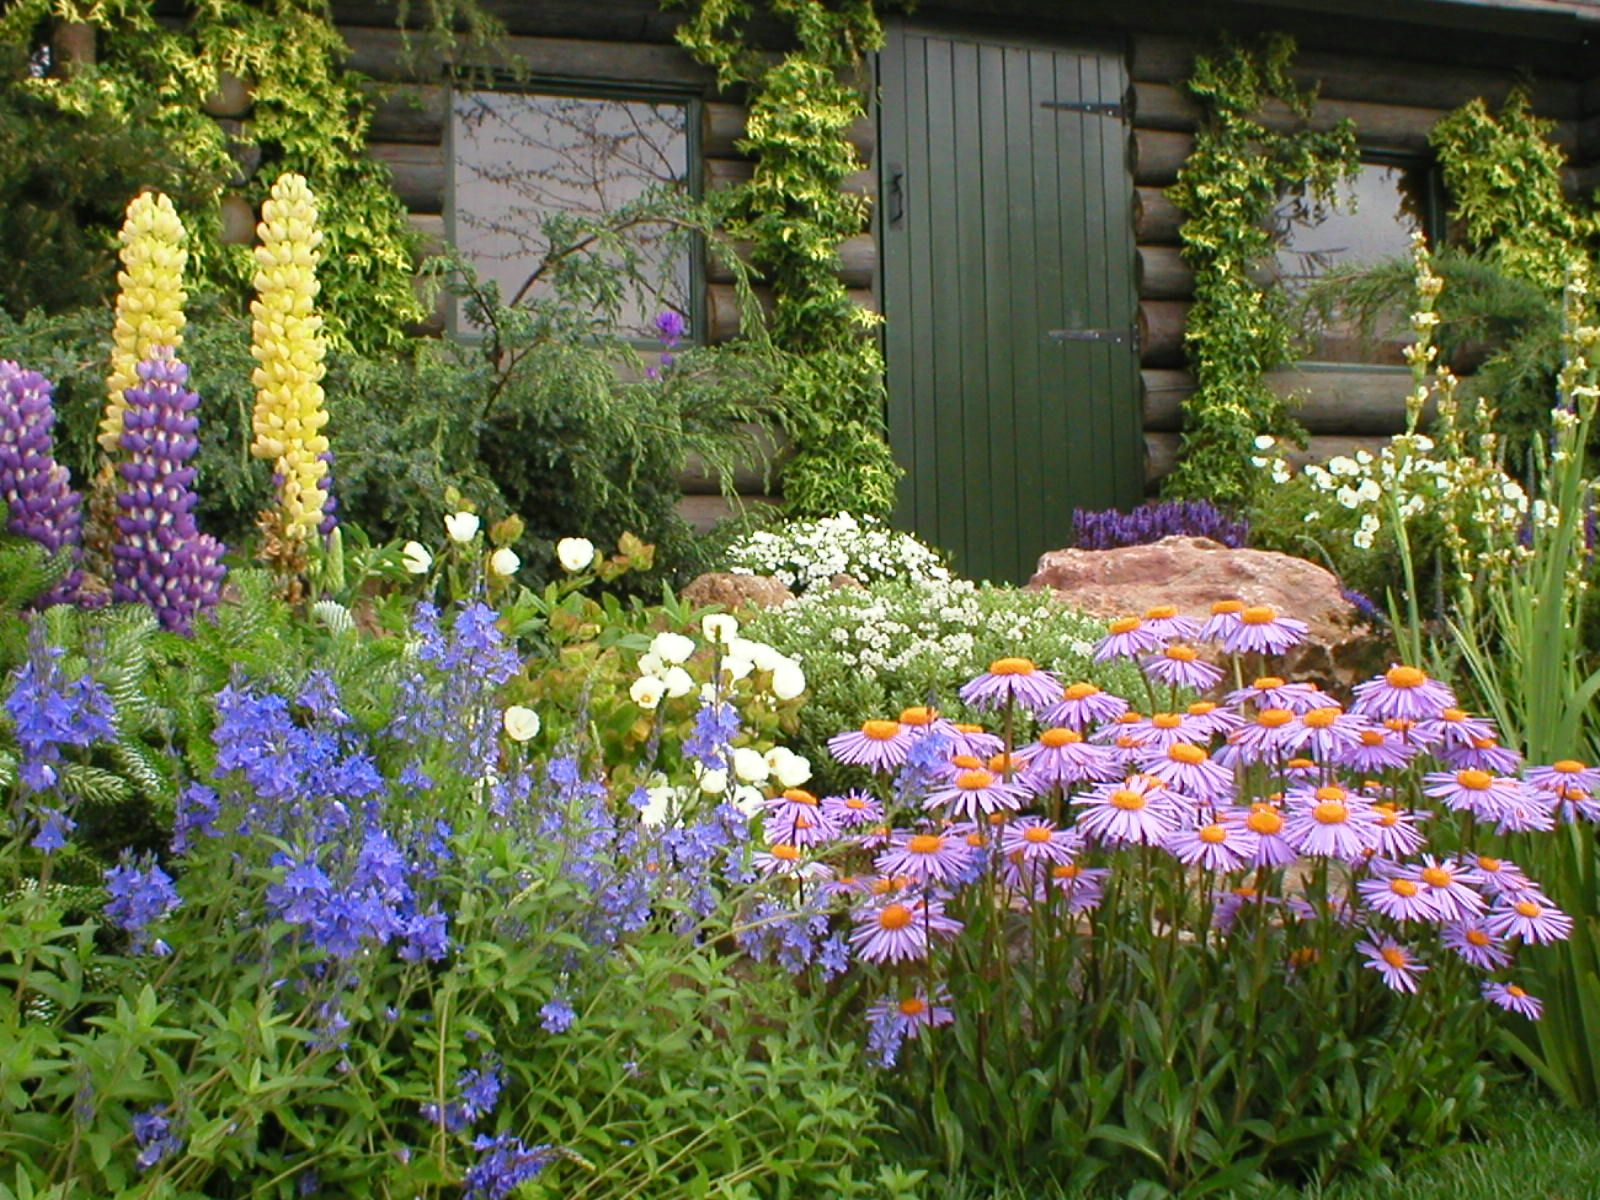 Cottage Garden Designs flower garden with outhouse country cottage garden tour garden tour garden design ideas Cottage Garden Design Garden Designer Stratford Upon Avon 1600x1200 Jpeg